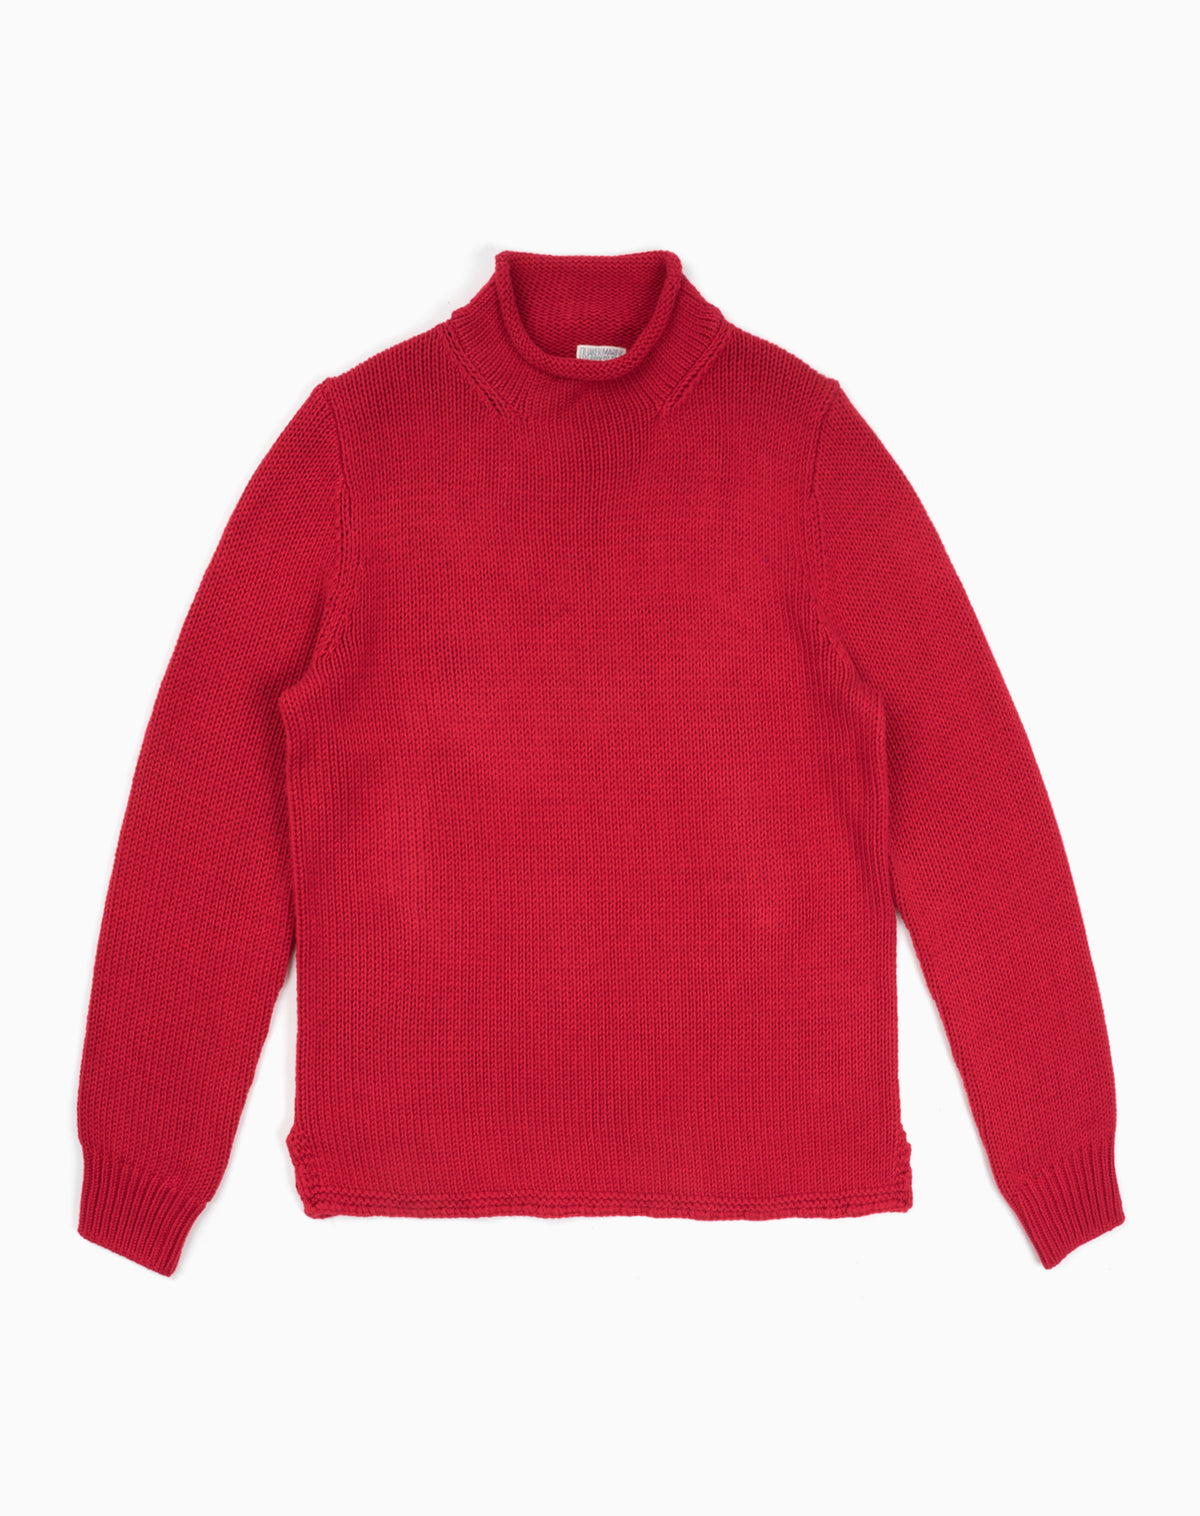 Fisherman's Sweater in Red